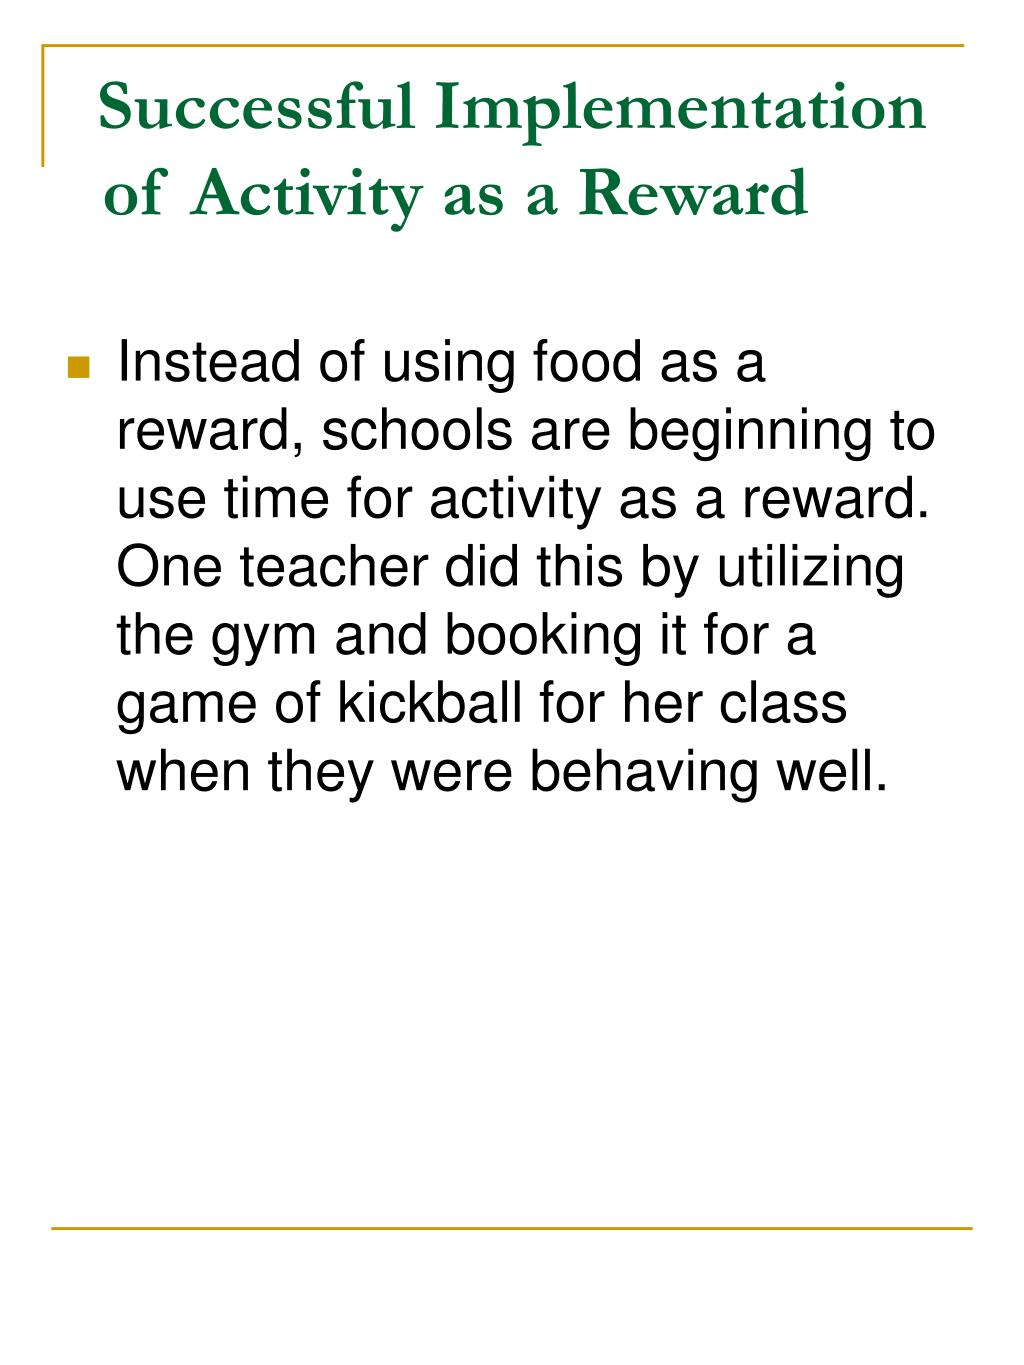 Successful Implementation of Activity as a Reward